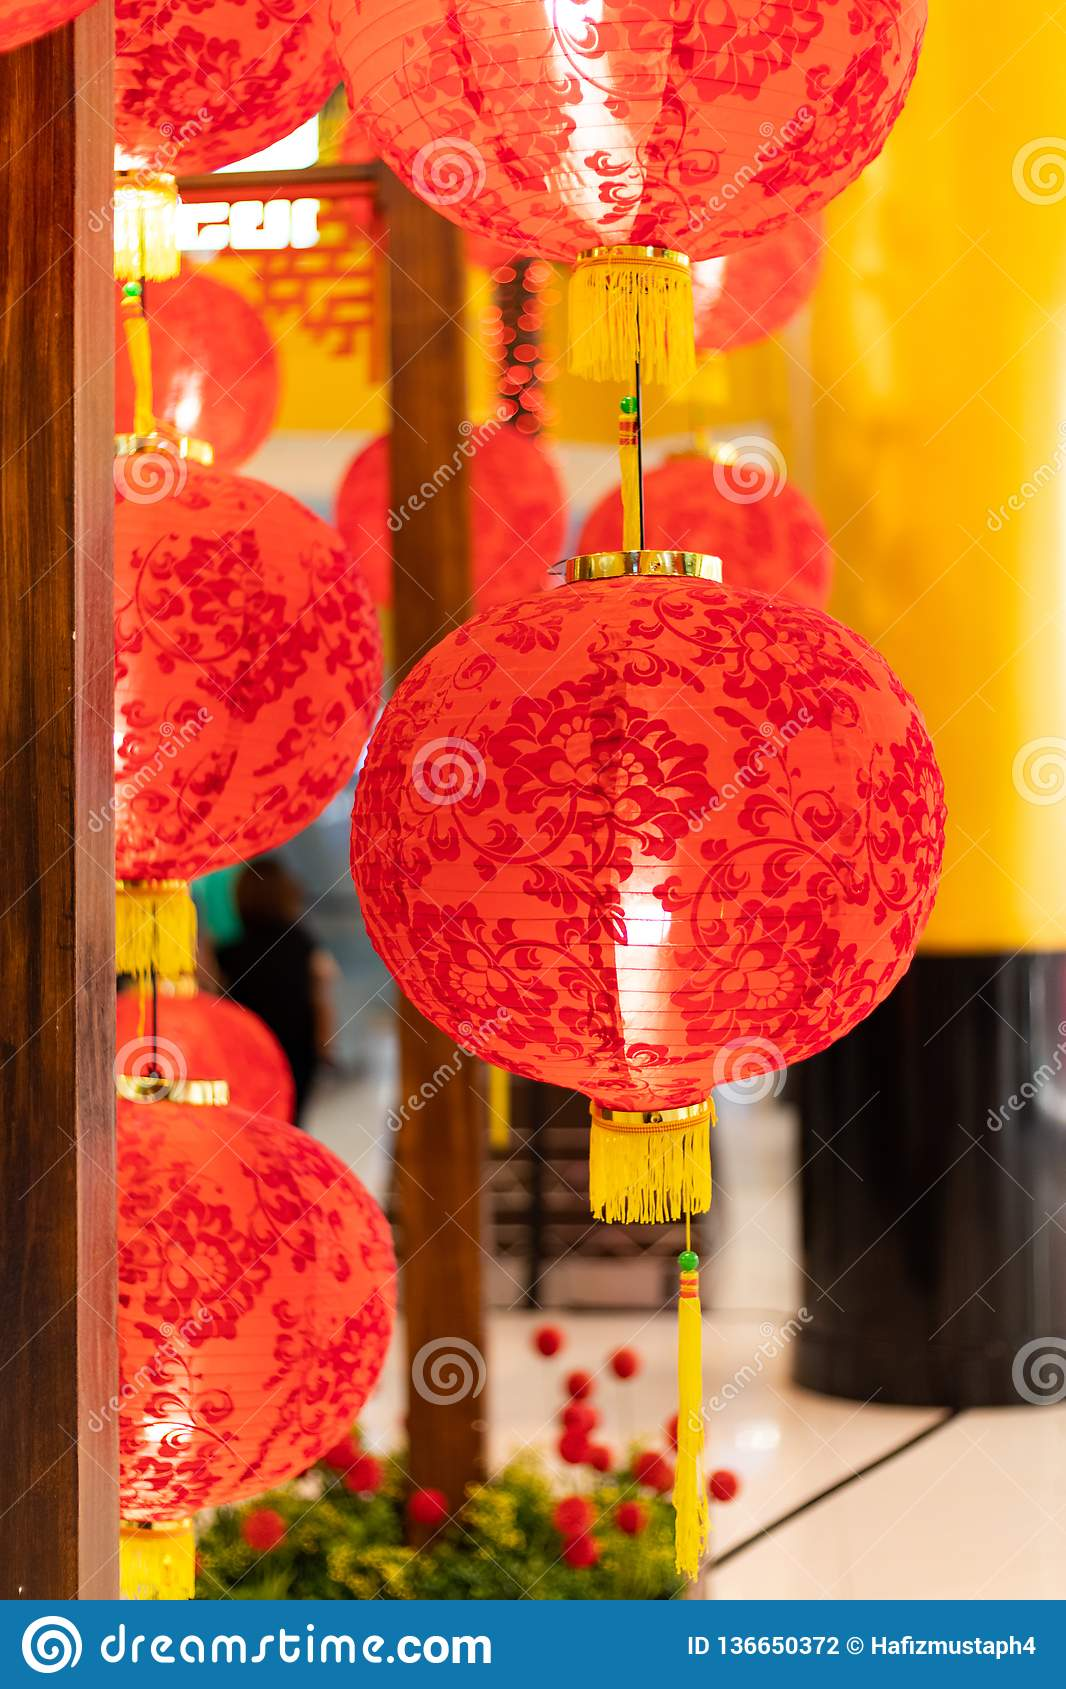 Chinese New Year Decorations With Lanterns And Envelopes ...